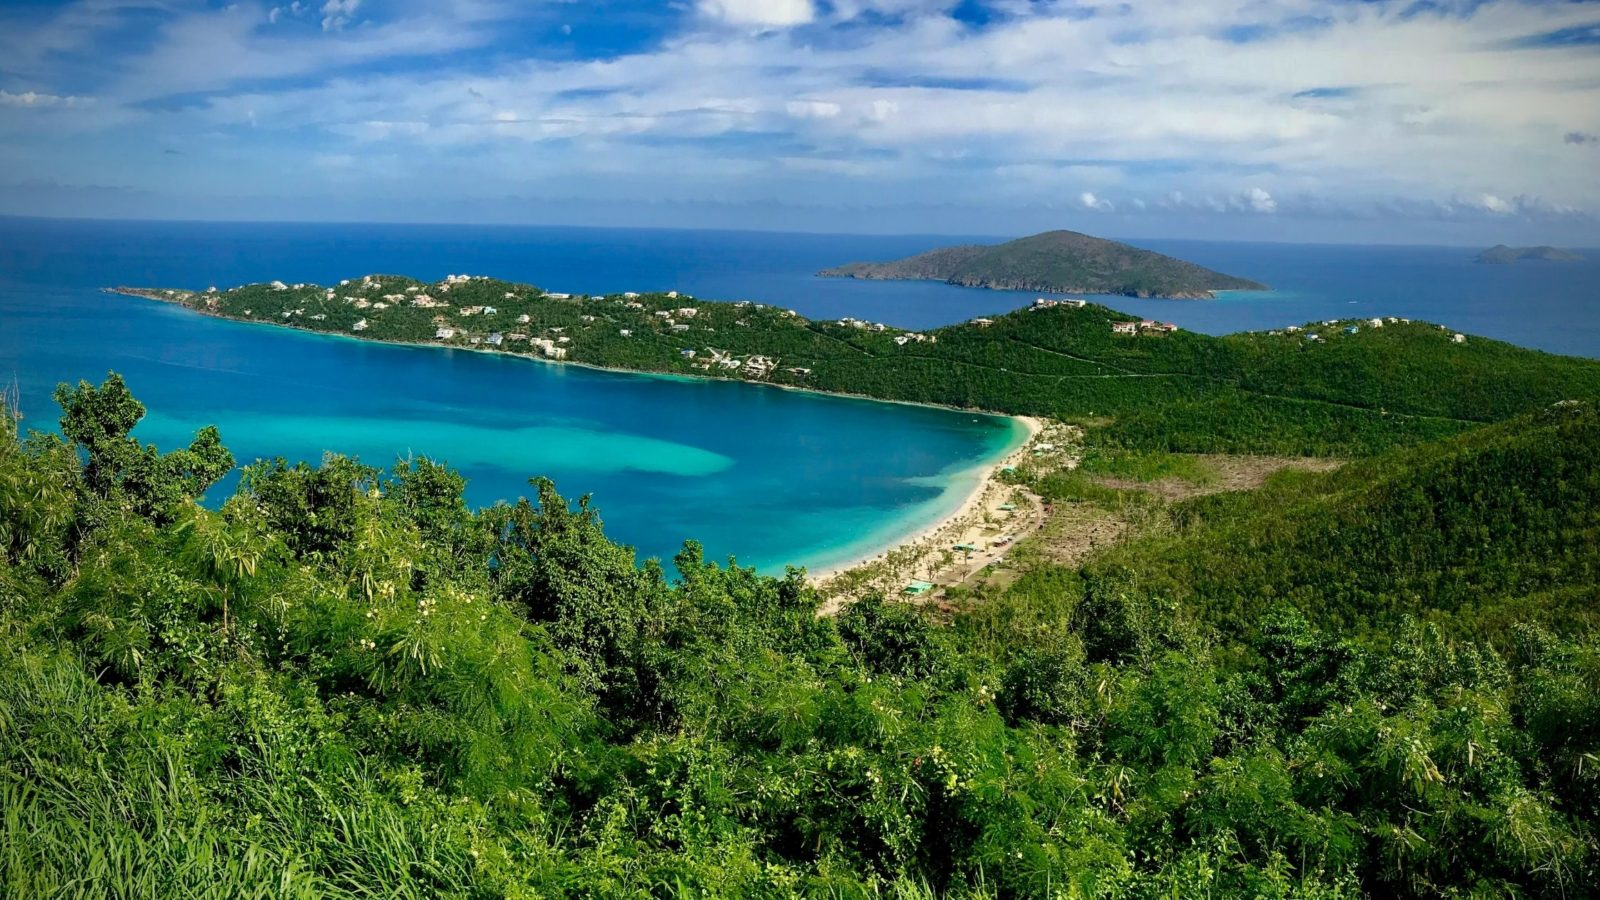 Do you need a passport to go to the U.S. Virgin Islands?